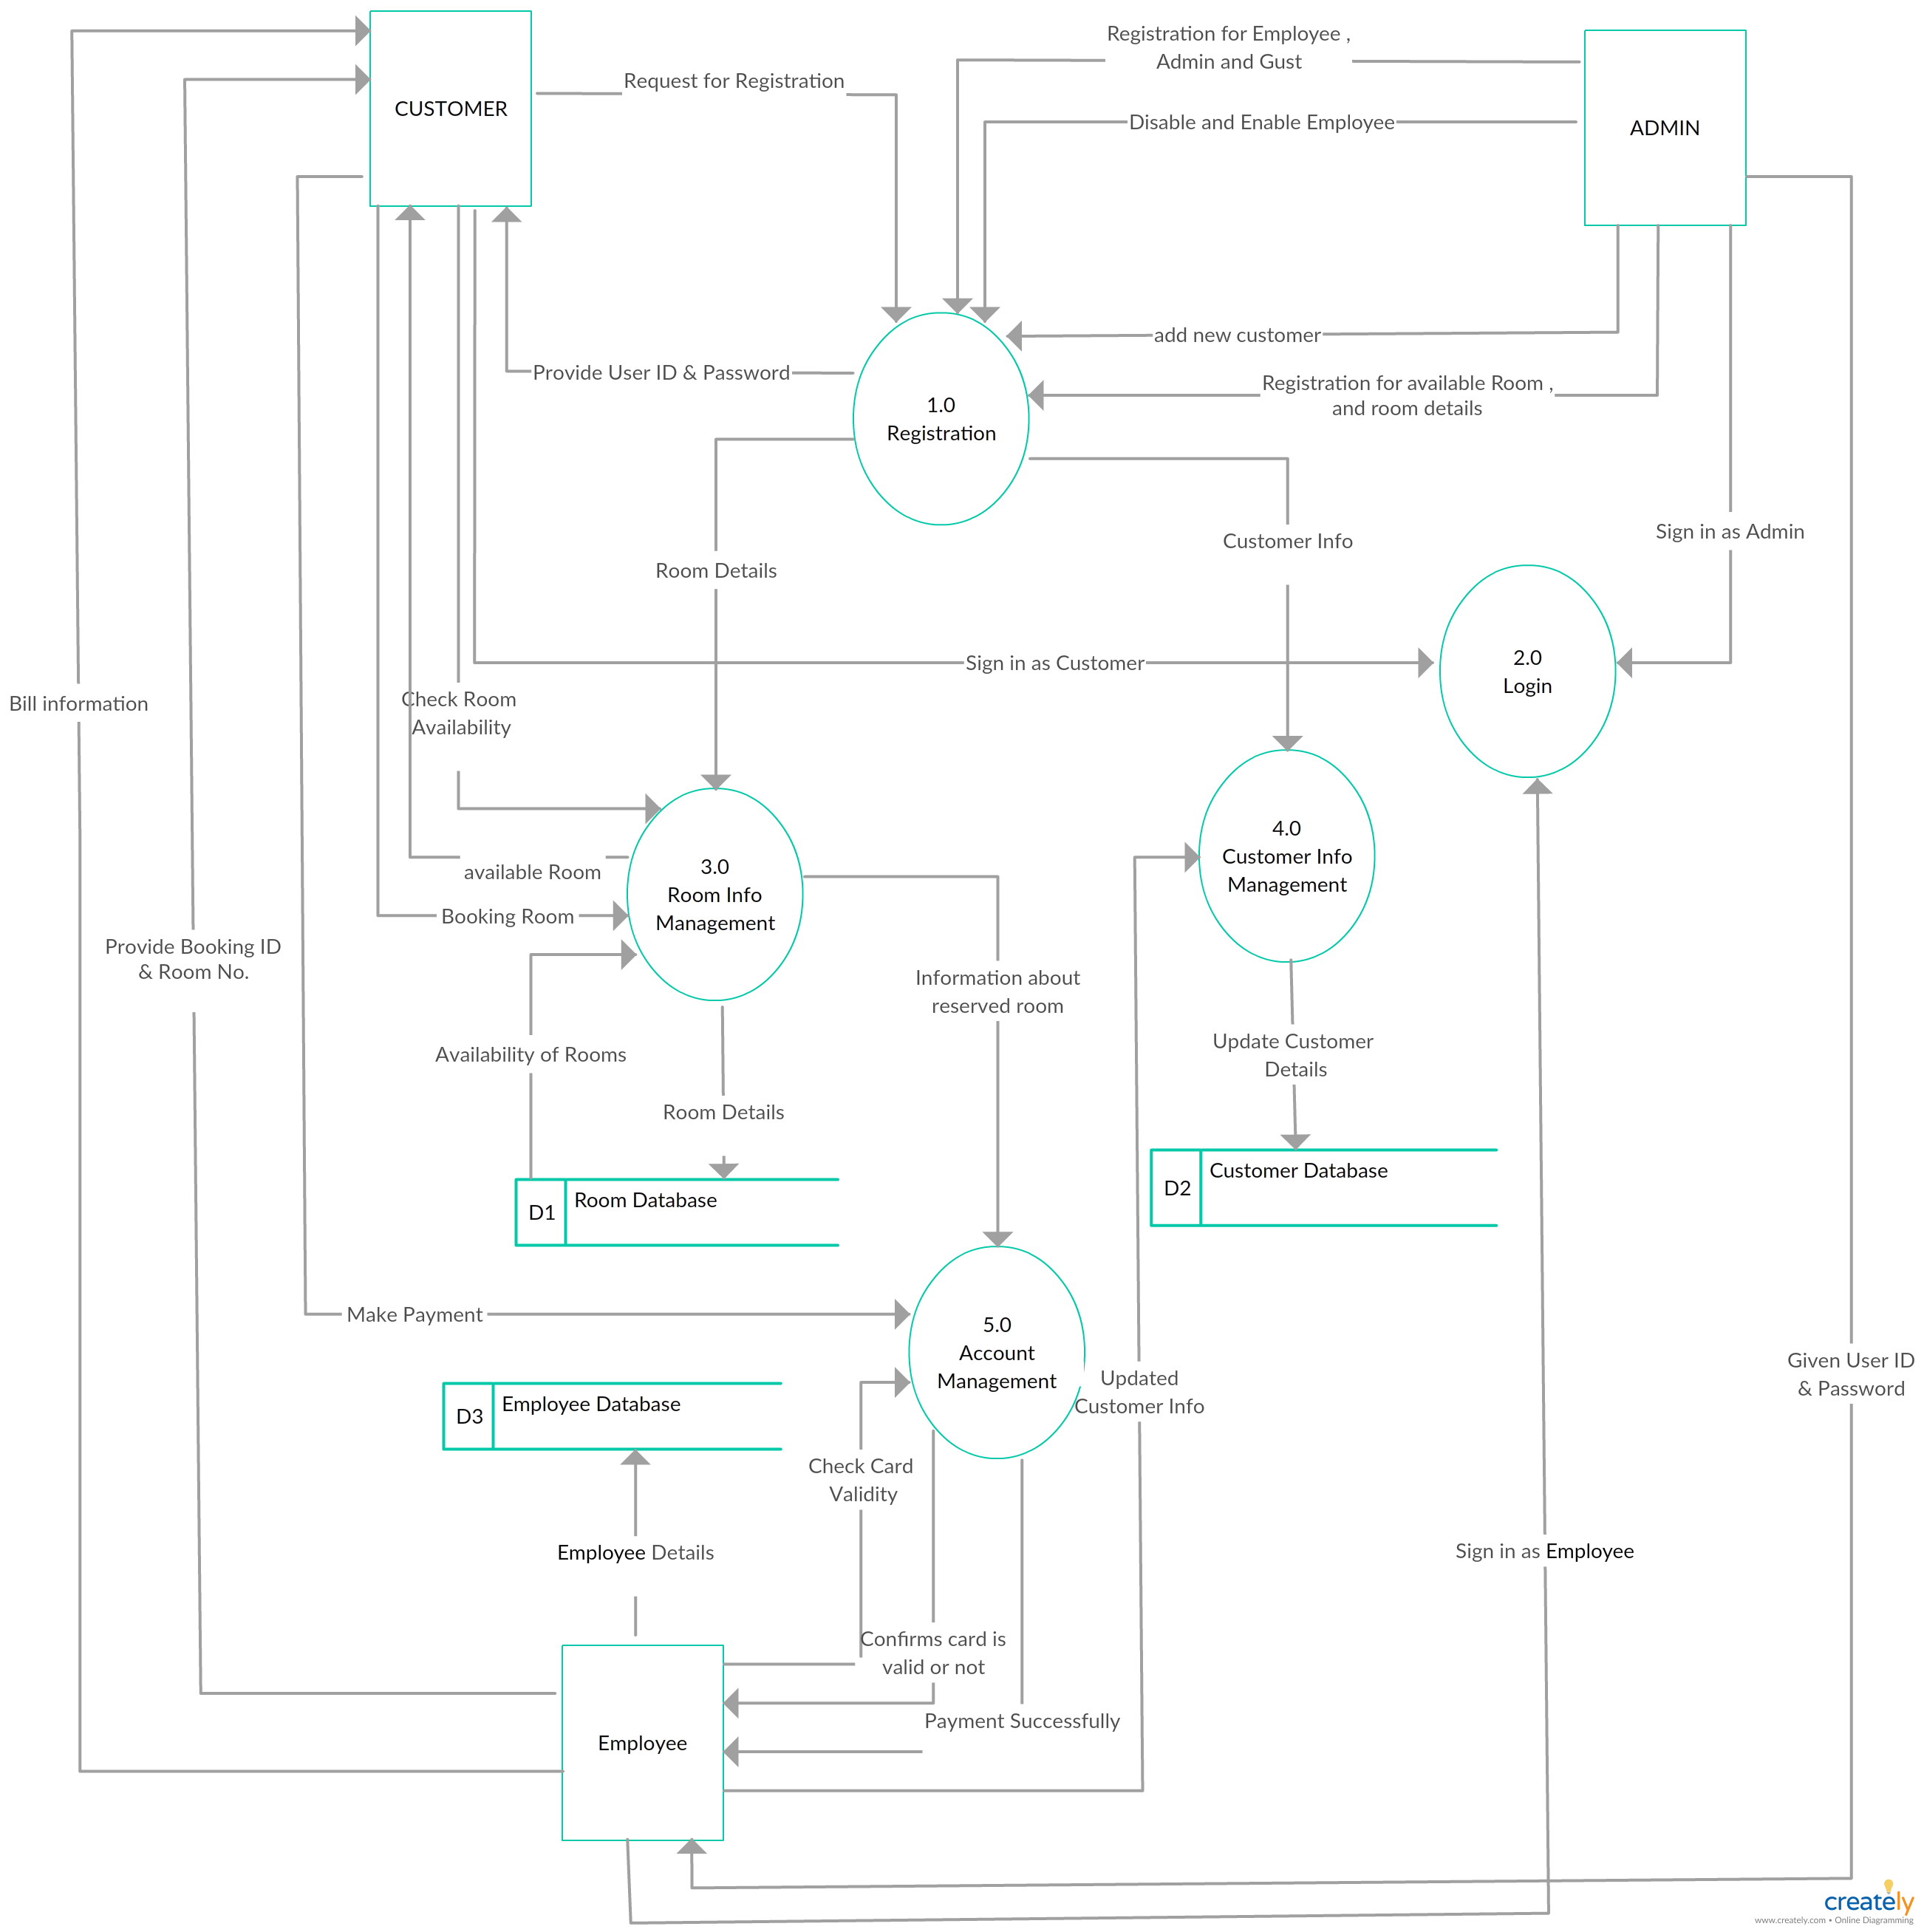 dfd for hotel management system level 1 dfd template for a hotel management system you can use this data flow diagram to create level 2 dfd diagrams too  [ 2604 x 2615 Pixel ]